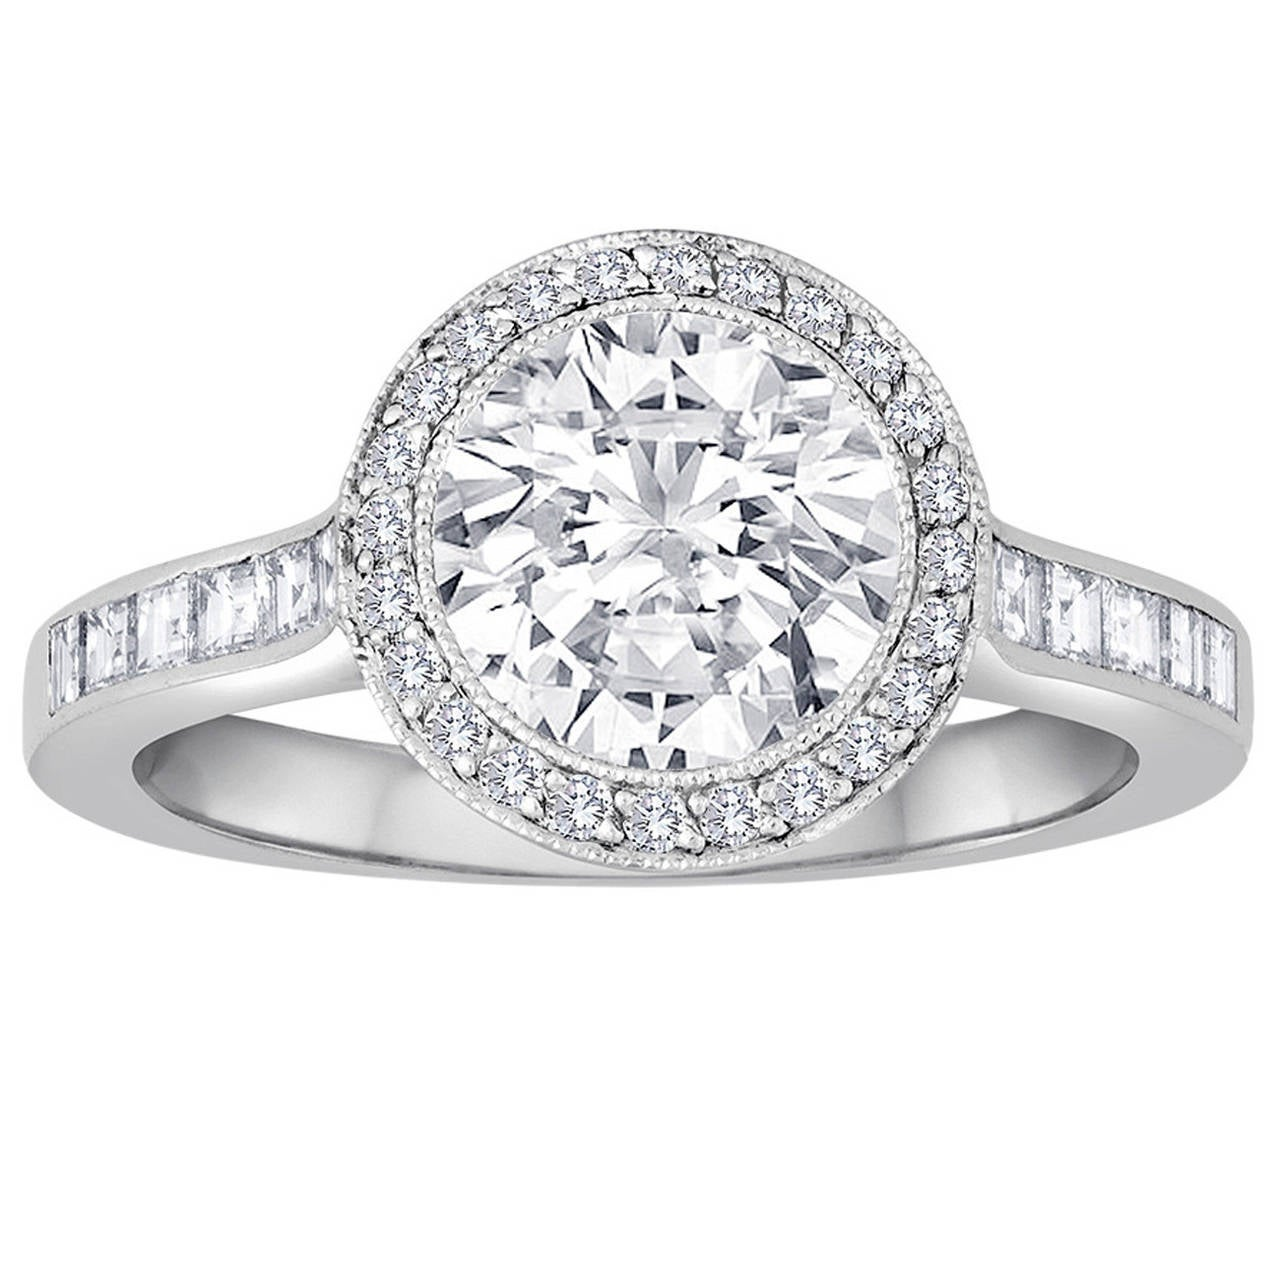 sale e cropresults id l j ring engagement jewelry gia solitaire for rings carat emerald diamond